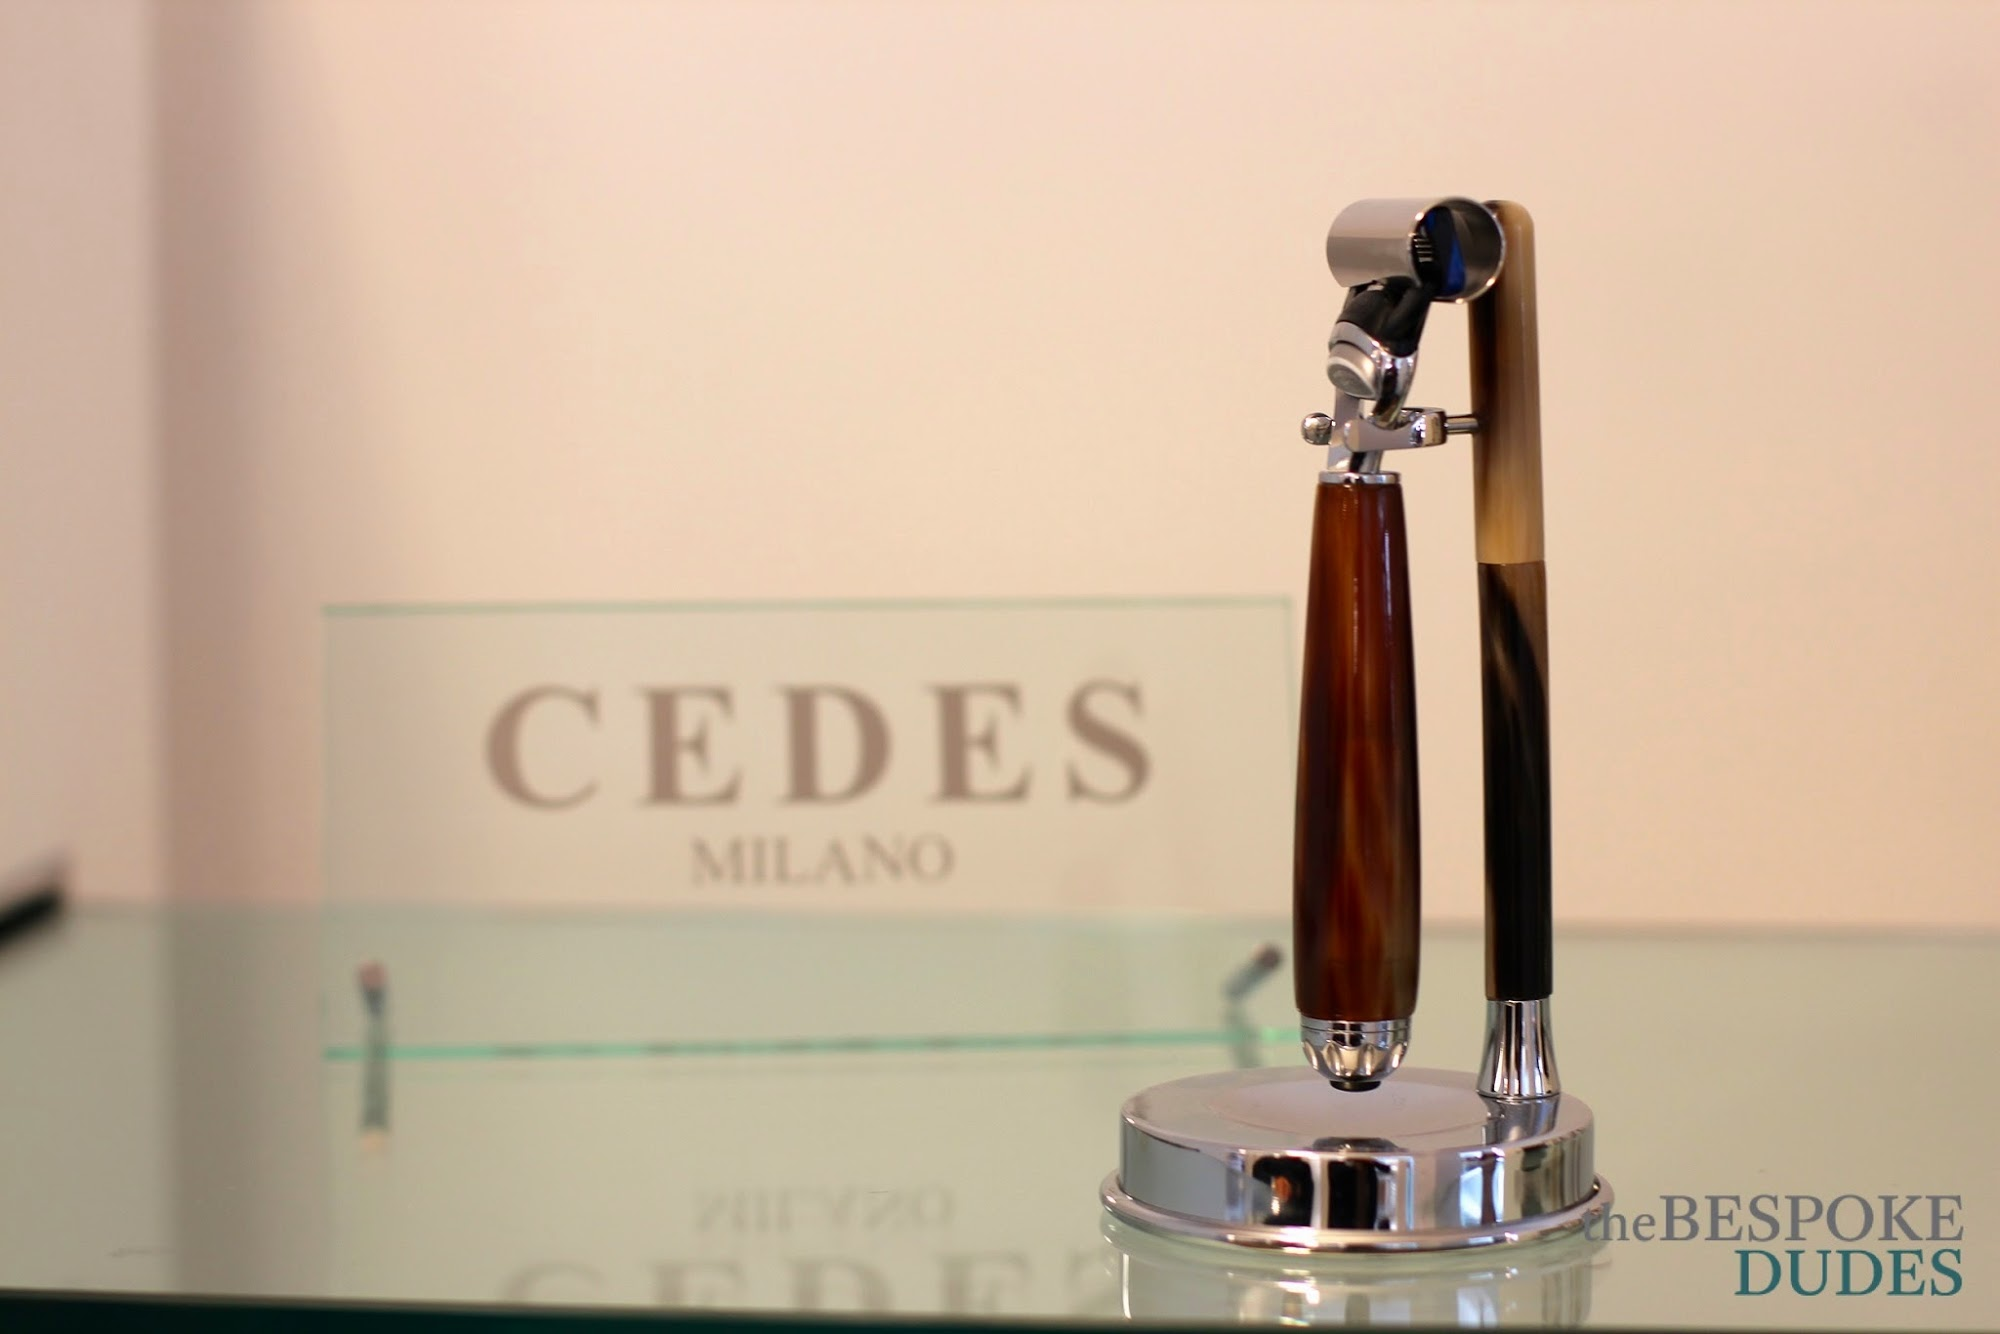 Dude Reviewed - Cedes Milano